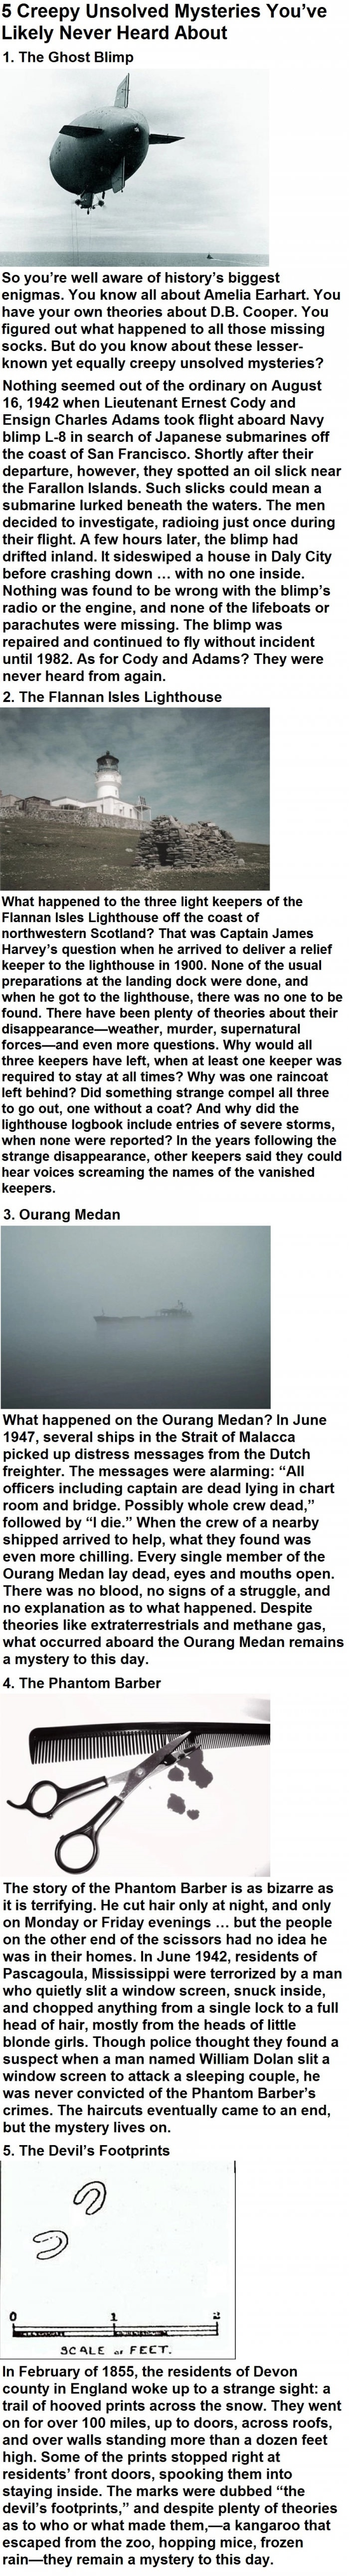 Creepy unsolved mysteries